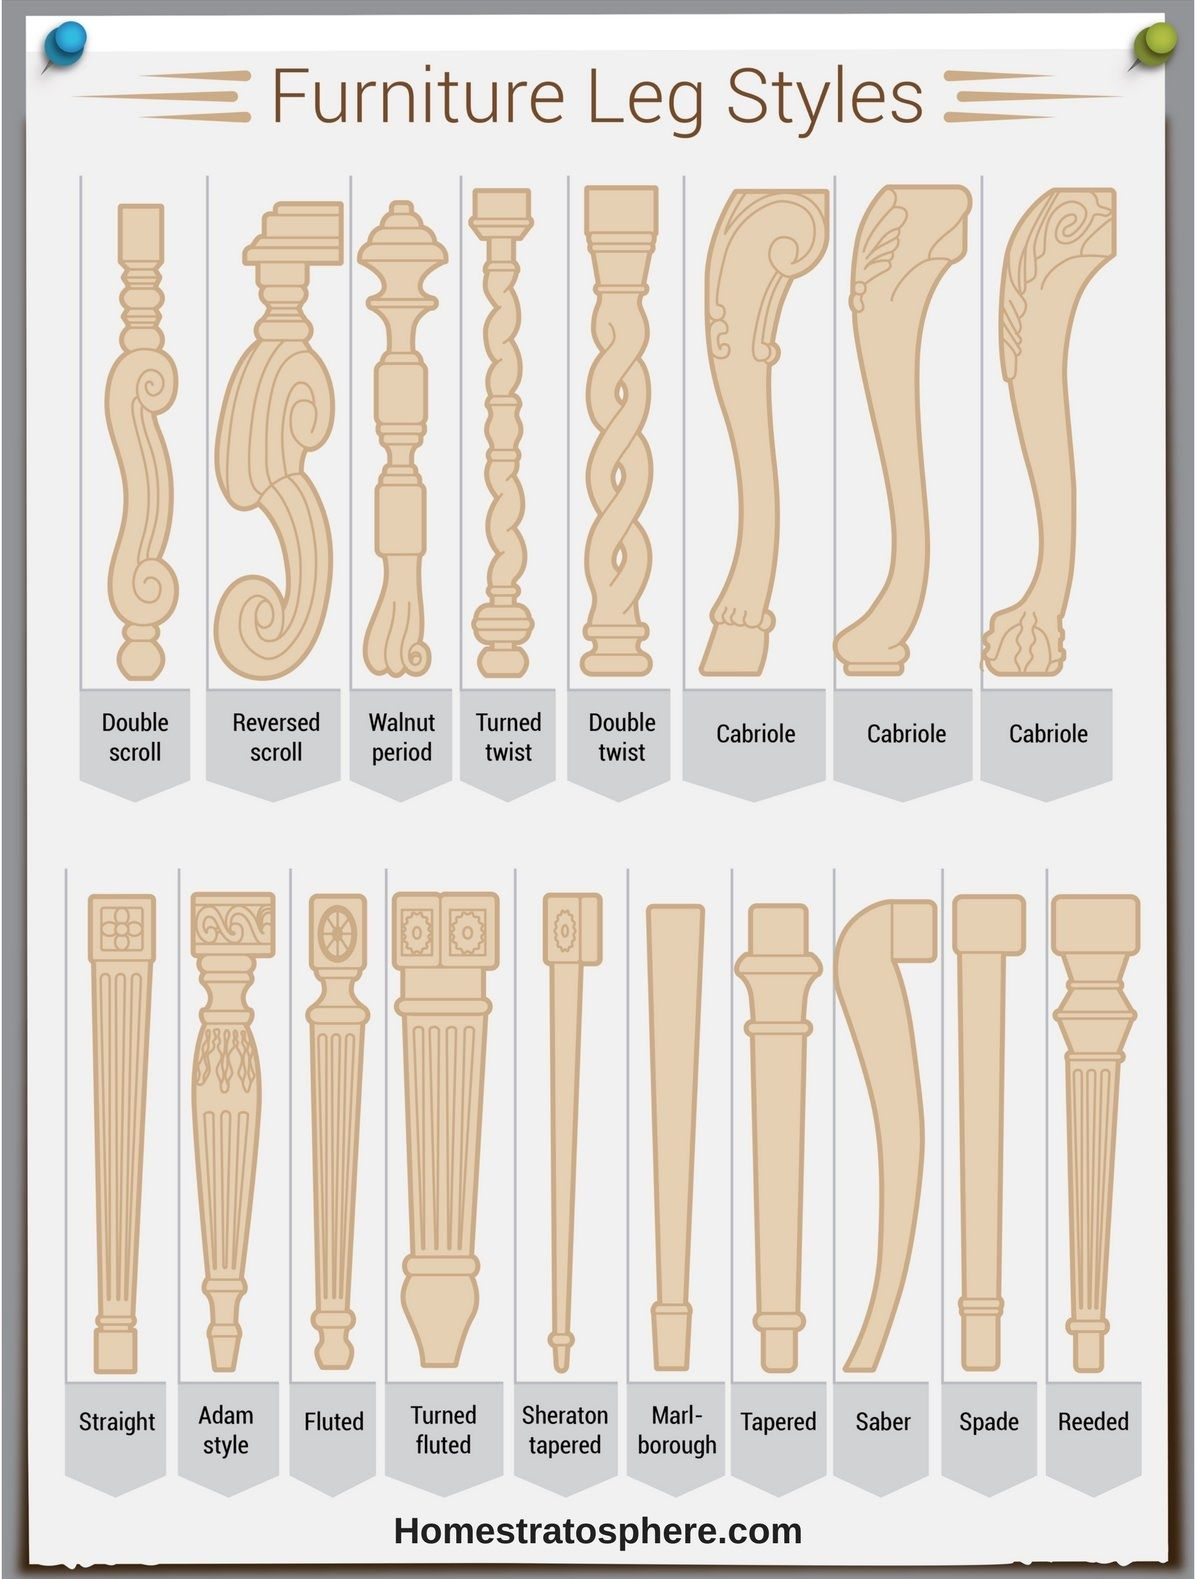 16 Furniture Leg Styles Illustrated Guide Includes Adam Leg